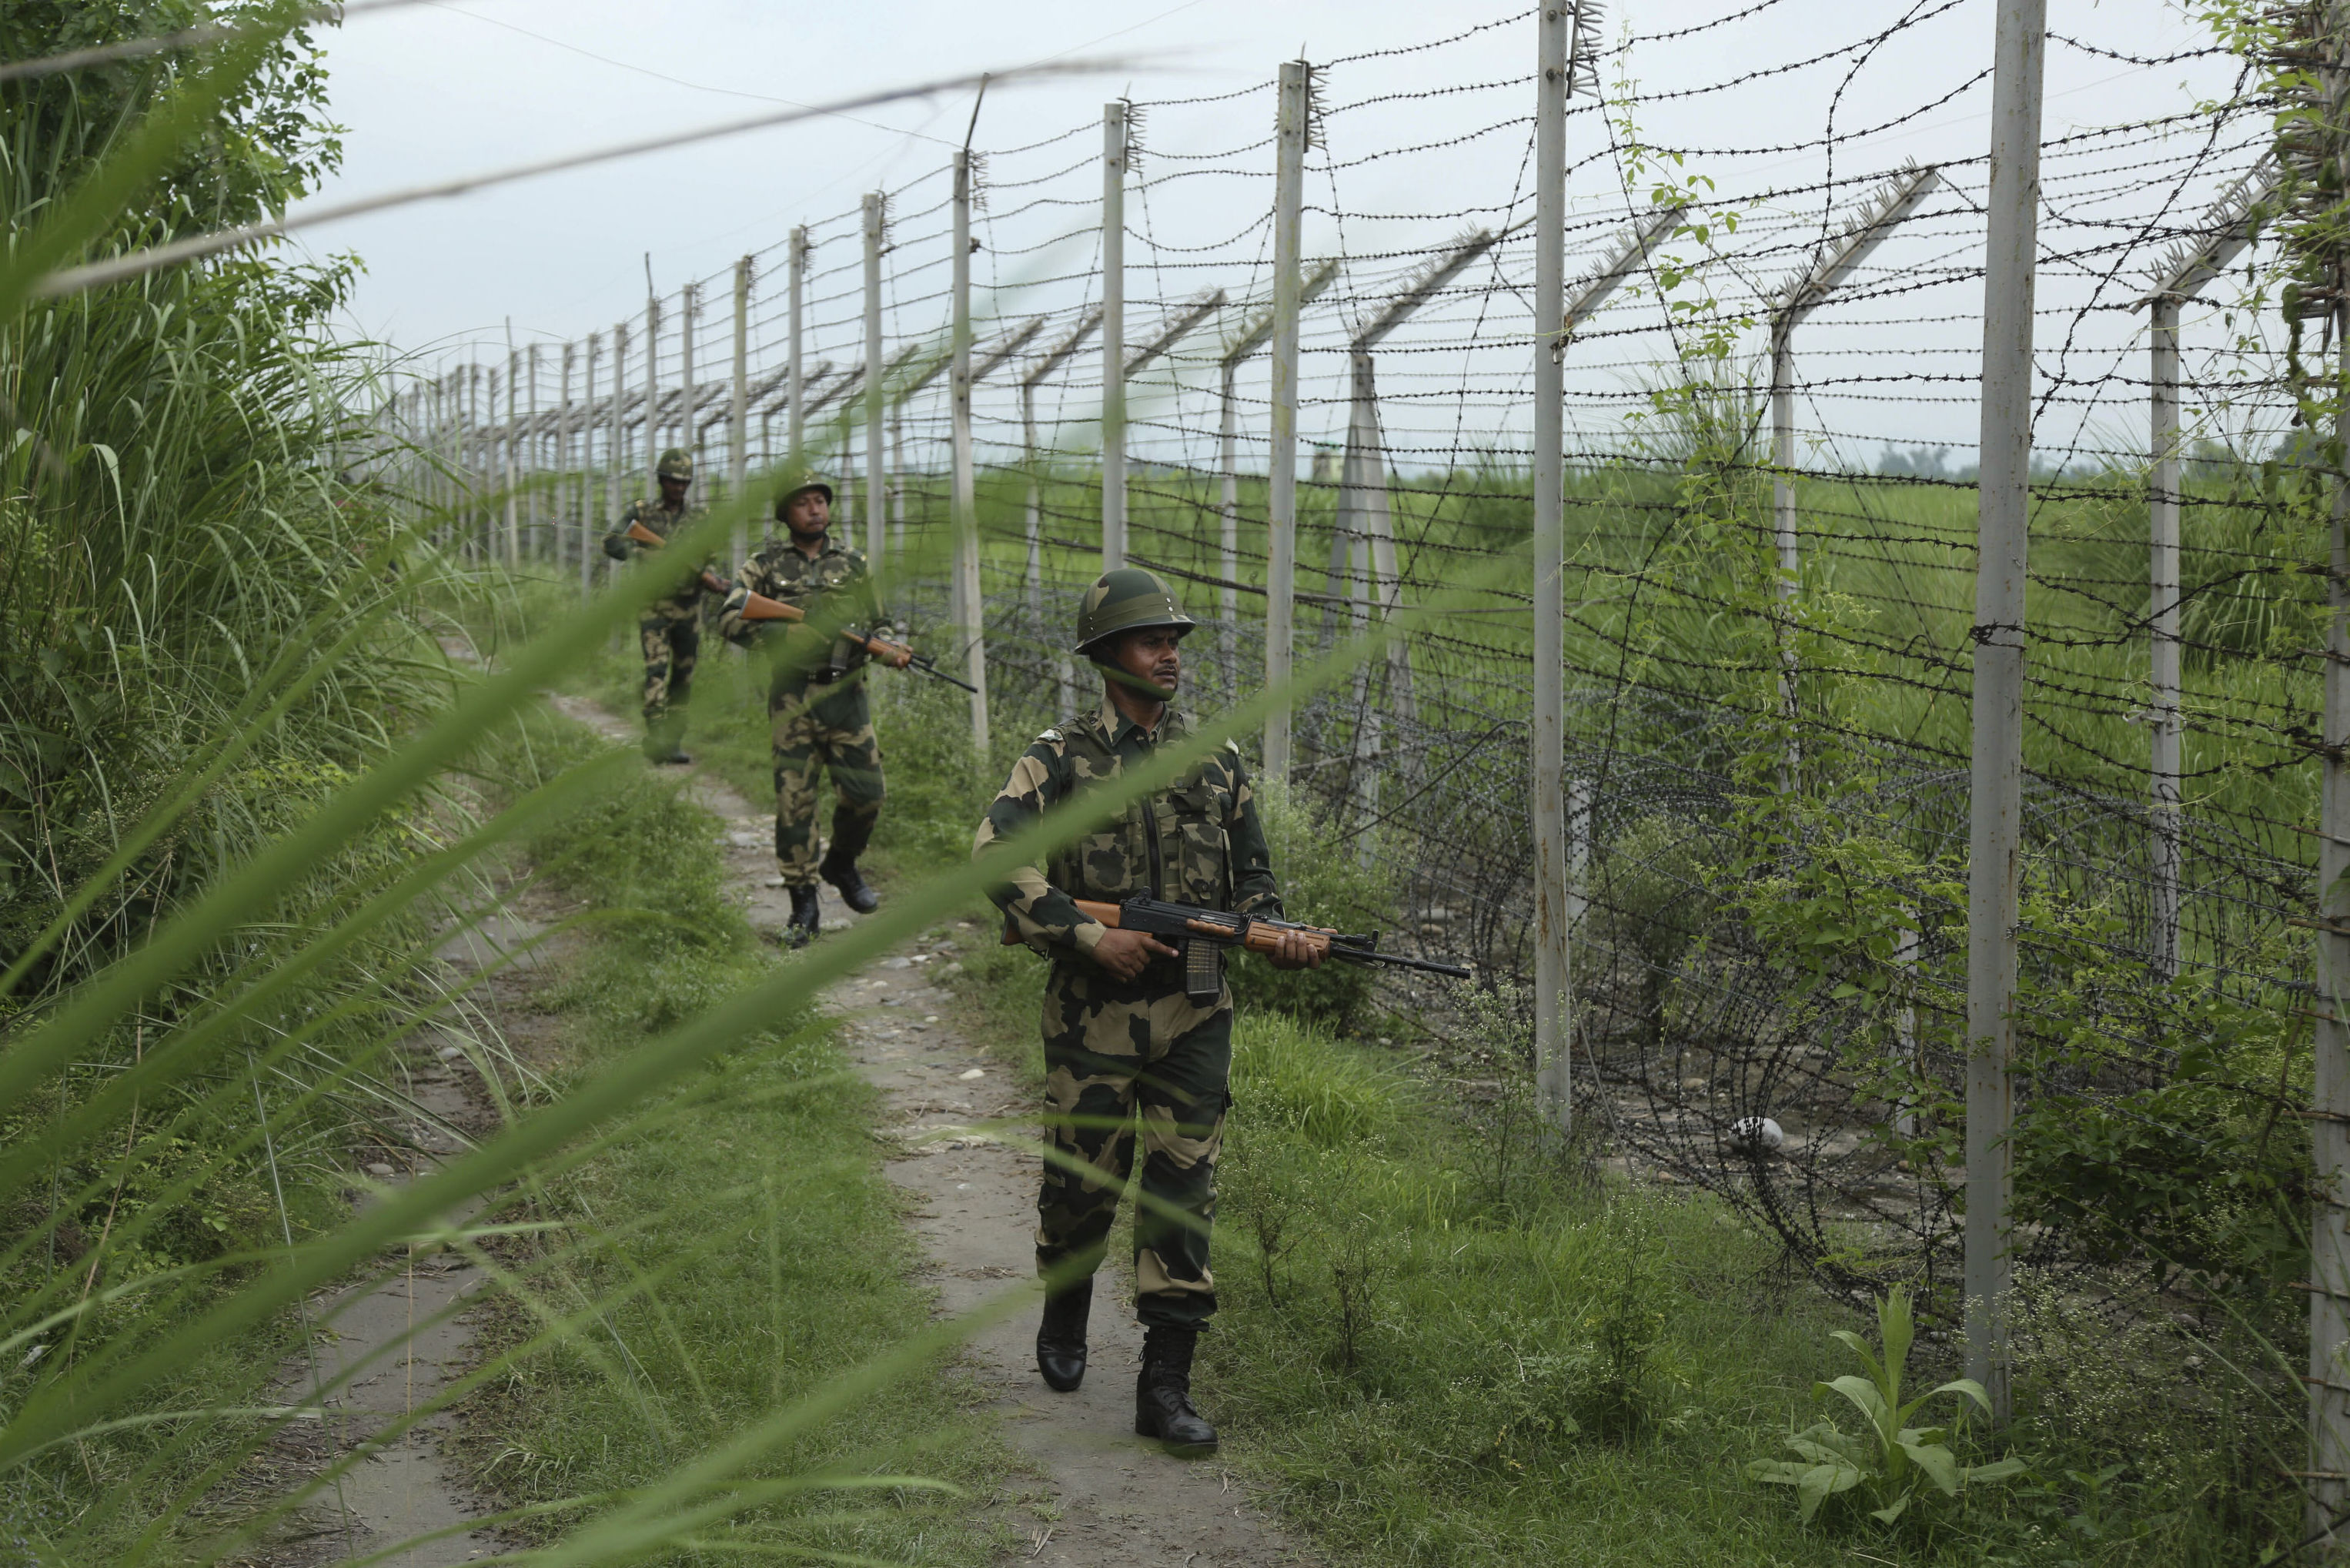 India's Border Security Force (BSF) soldiers patrol near the India Pakistan border fencing at Garkhal in Akhnoor, about 35 kilometers (22 miles) west of Jammu, India, Tuesday, Aug.13, 2019